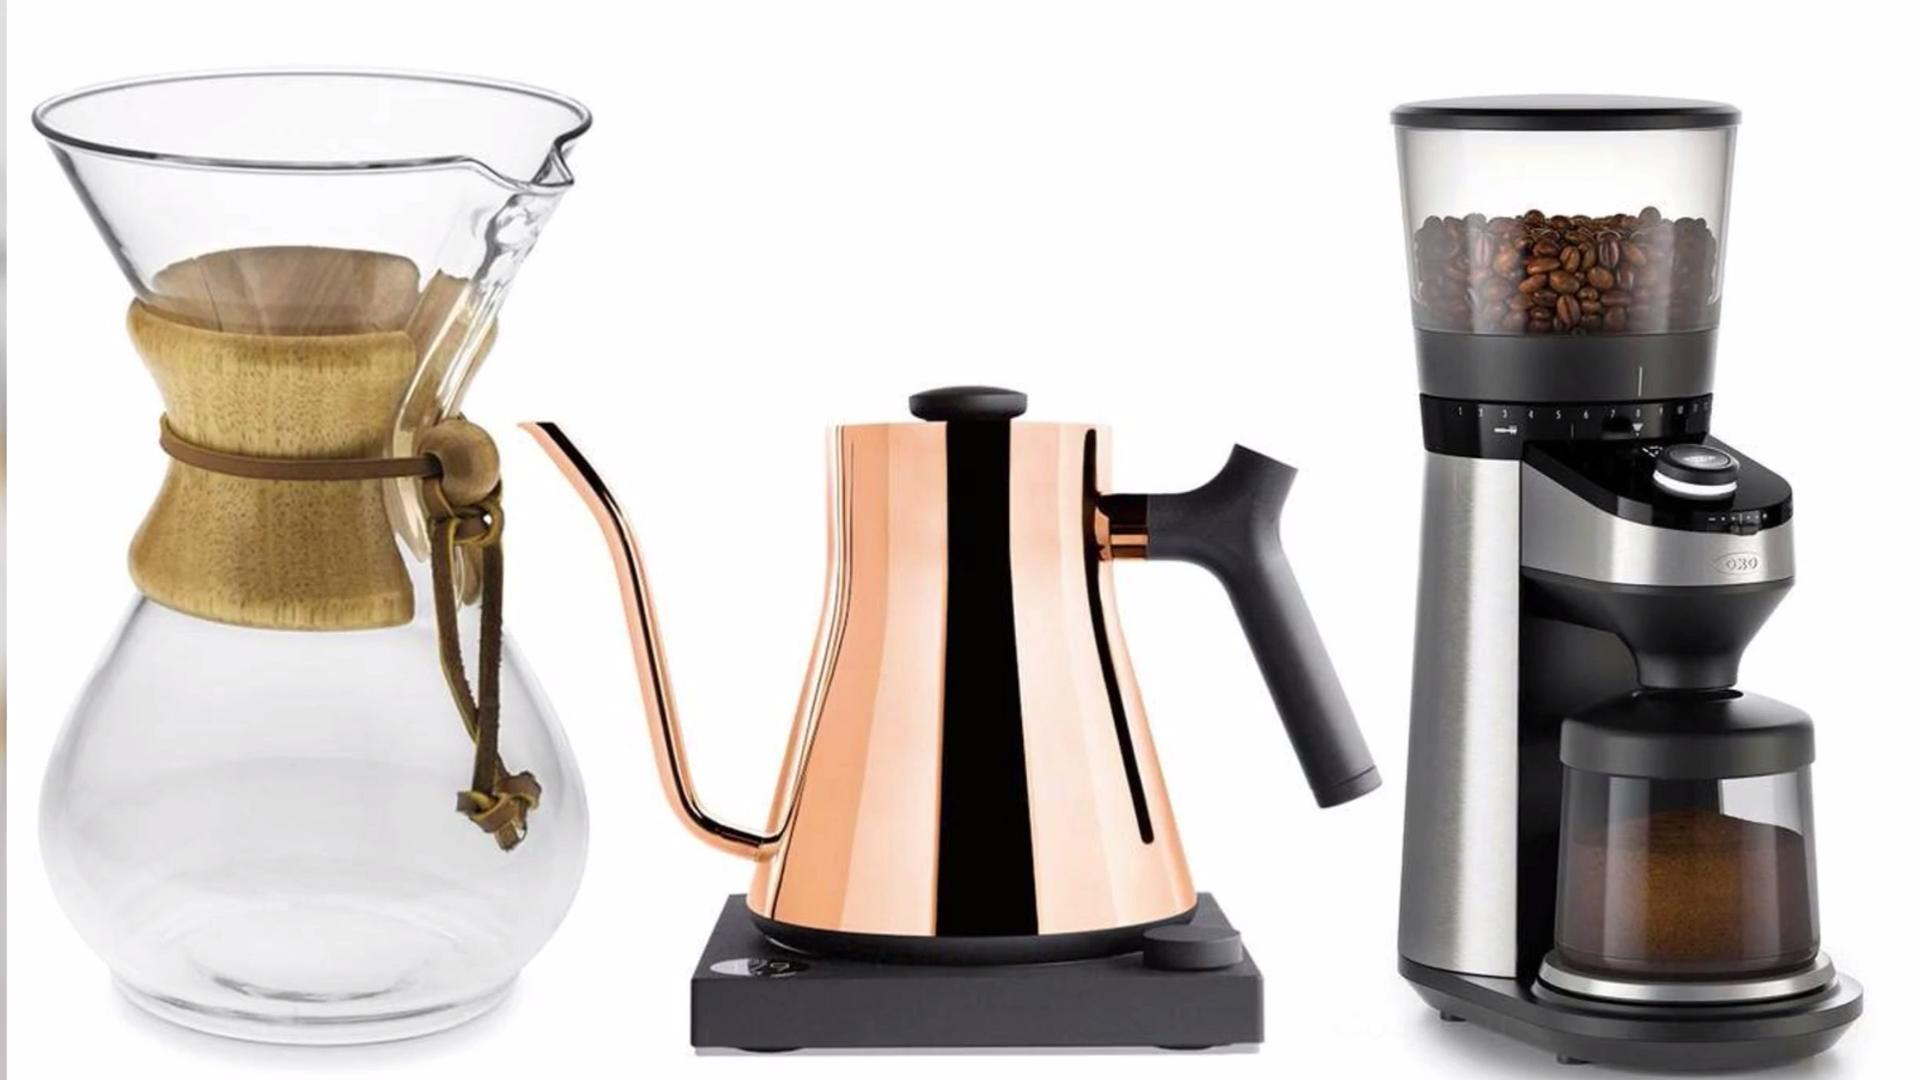 The Best Actually Useful High End Kitchen Gifts for 2018